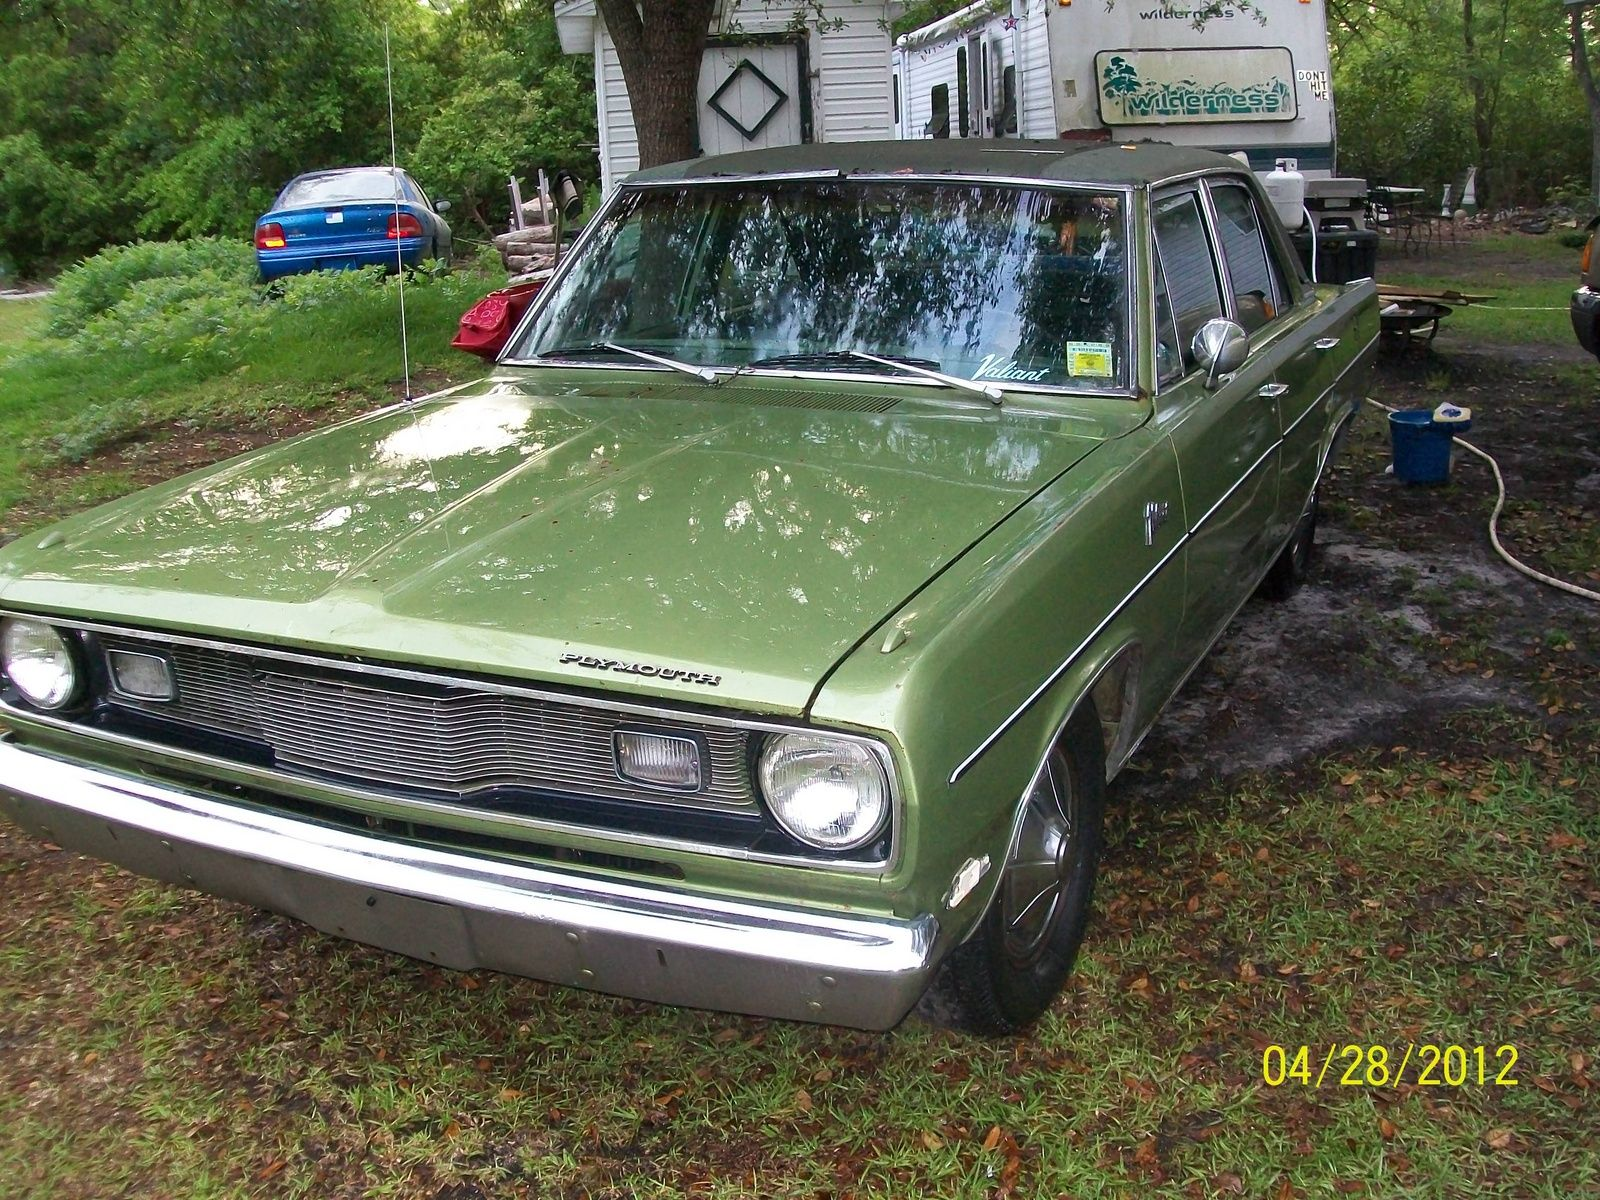 Picture of 1972 Plymouth Valiant exterior Cars